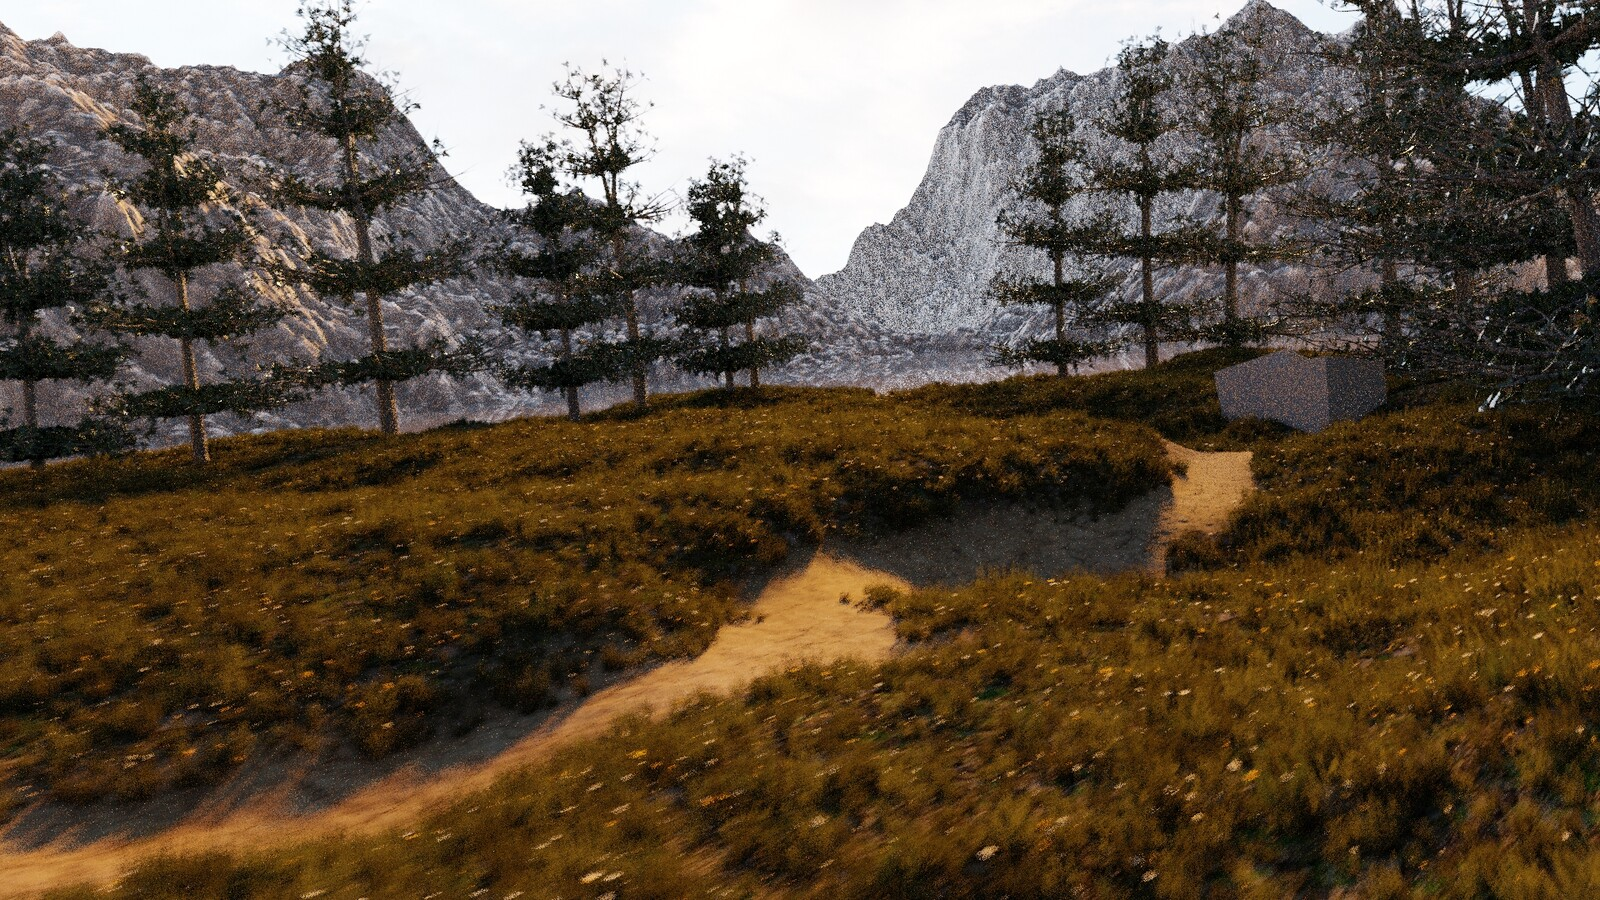 Here I added a lot. I made some trees with my own self made leave textures (from pictures). I also added some mountains using heightmaps. This worked perfectly.